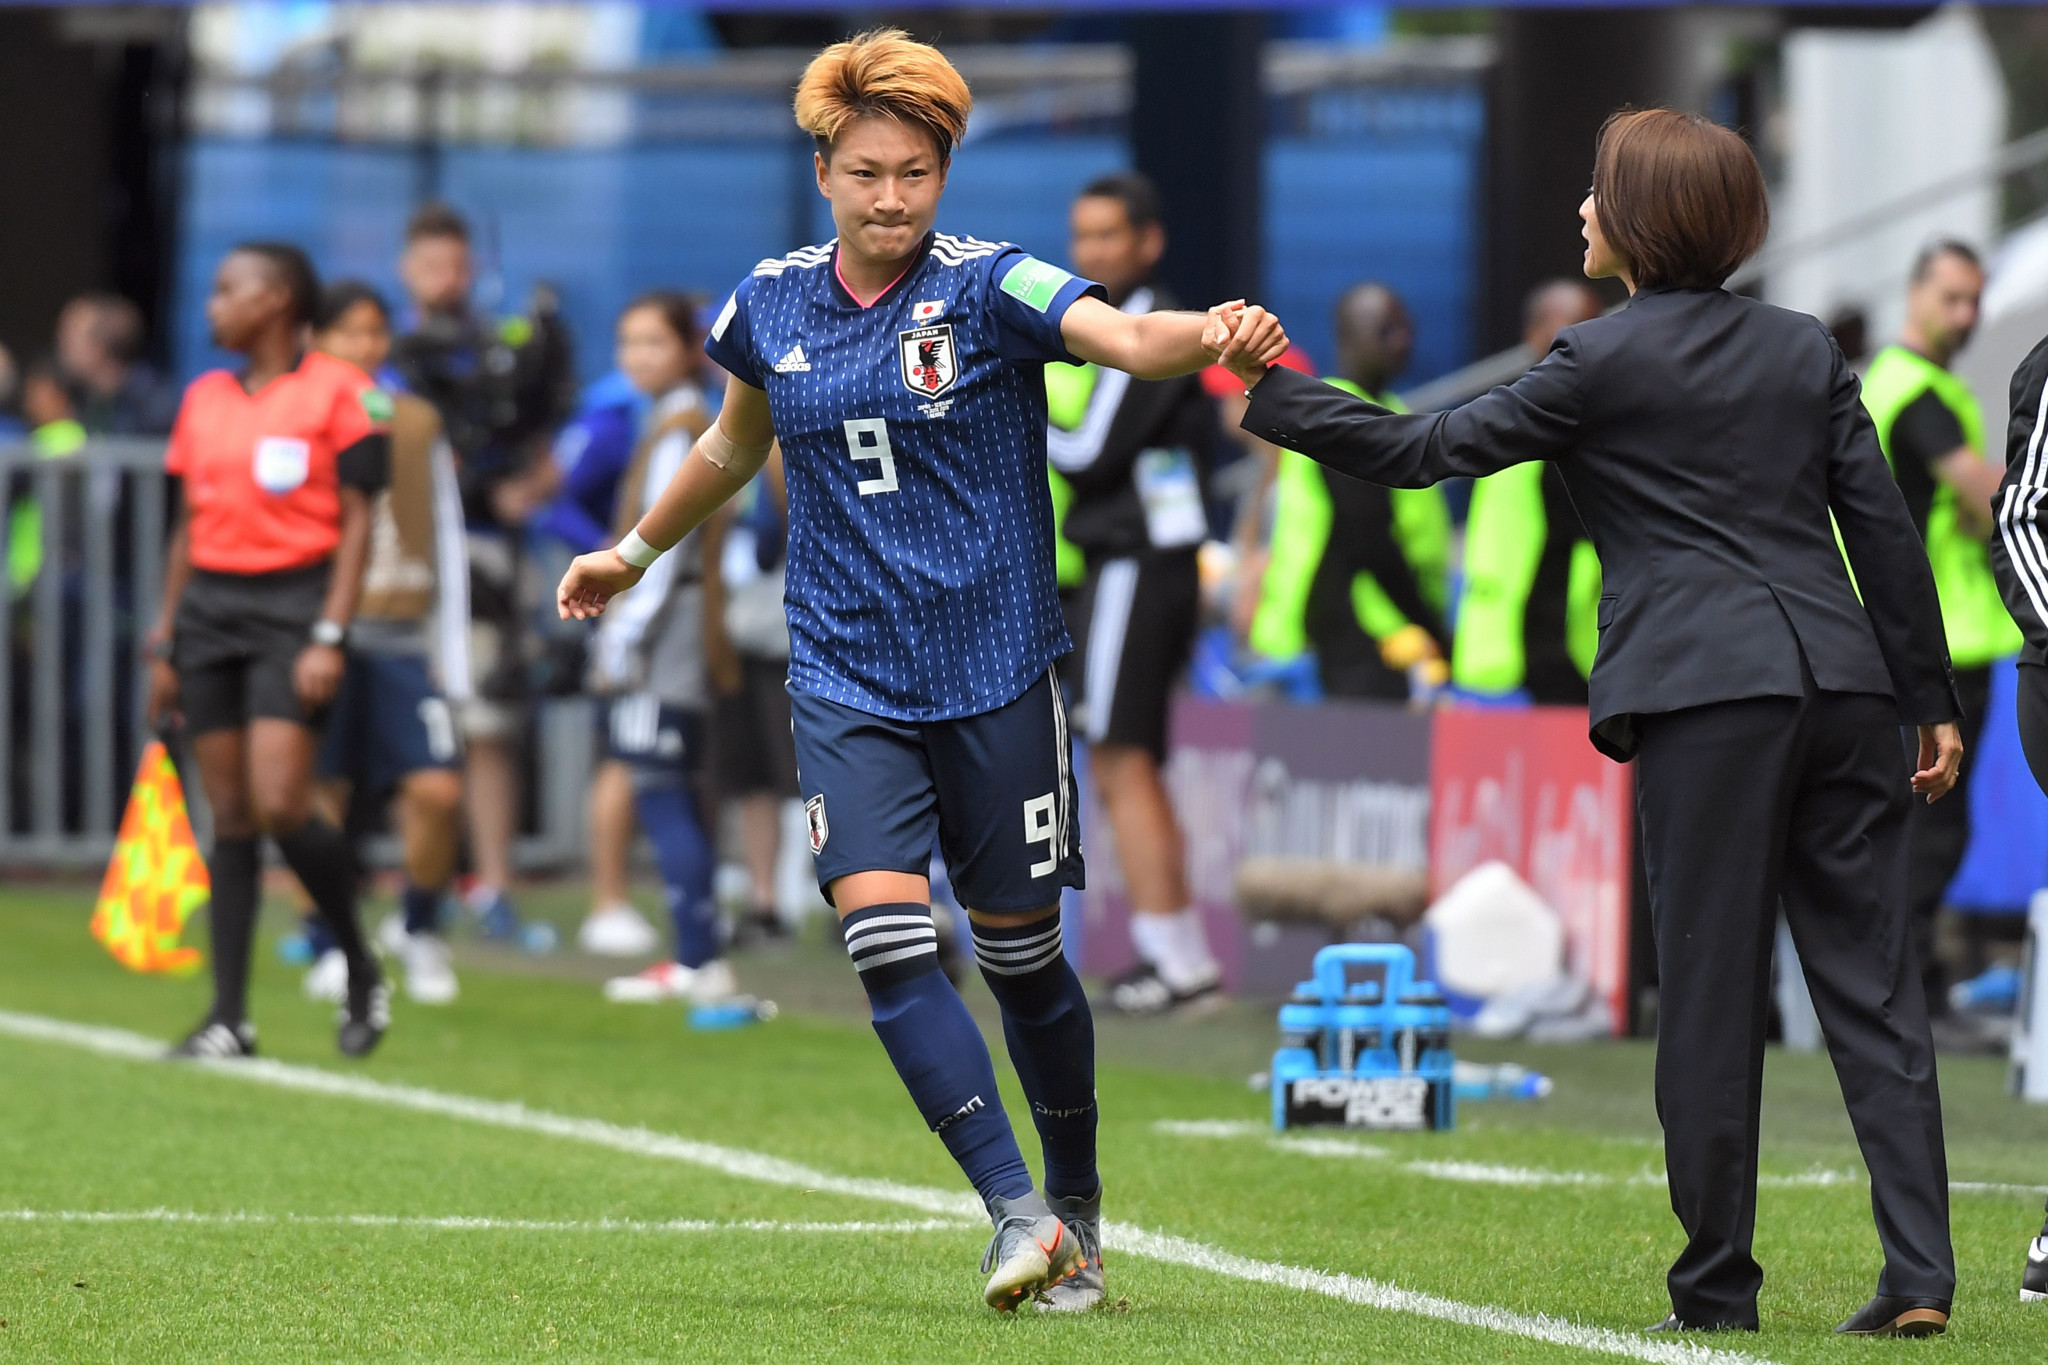 Japan forward Yuika Sugasawa, left, is congratulated by her coach Asako Takakura after doubling Japan's lead against Scotland ©Getty Images